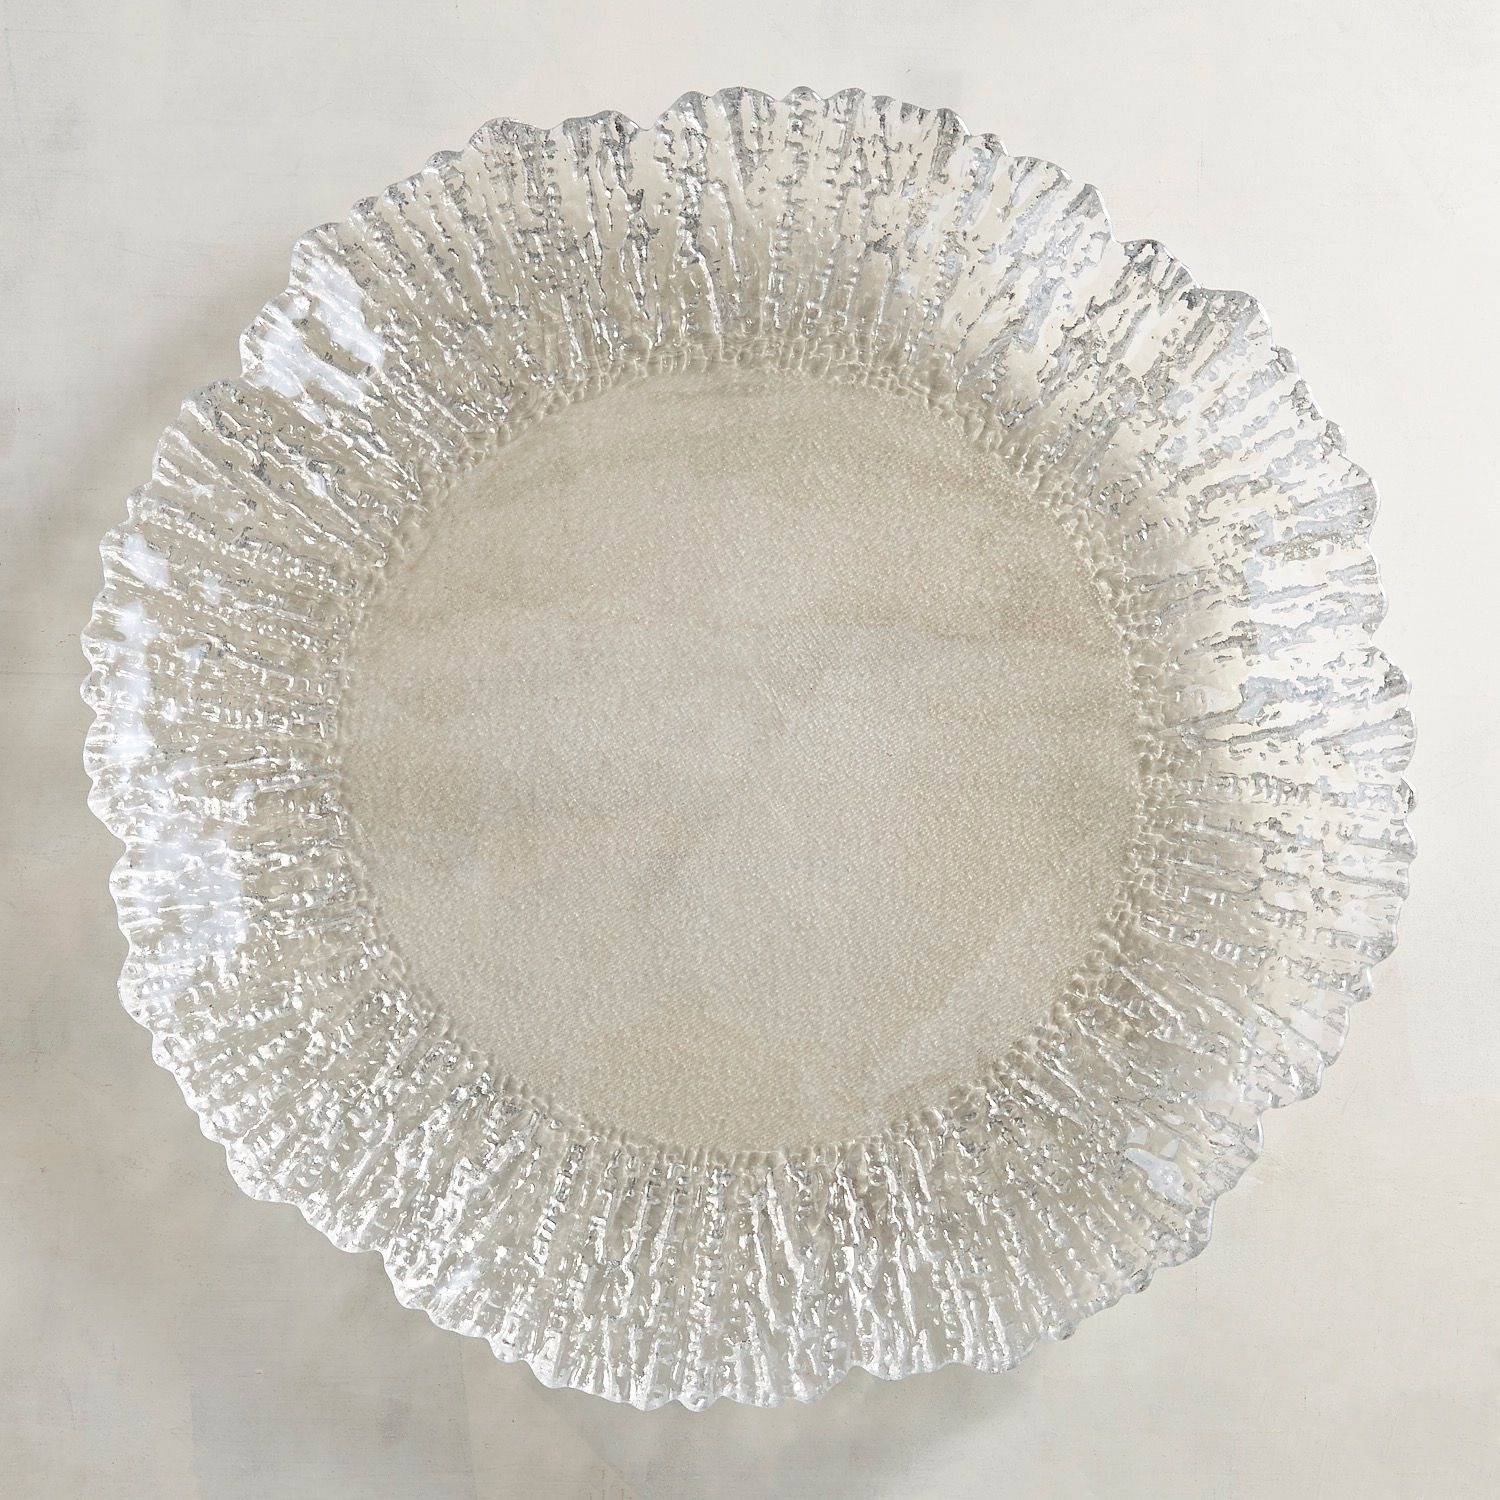 Luster Silver Rim Glass Charger Plate Pier 1 Imports 14 95